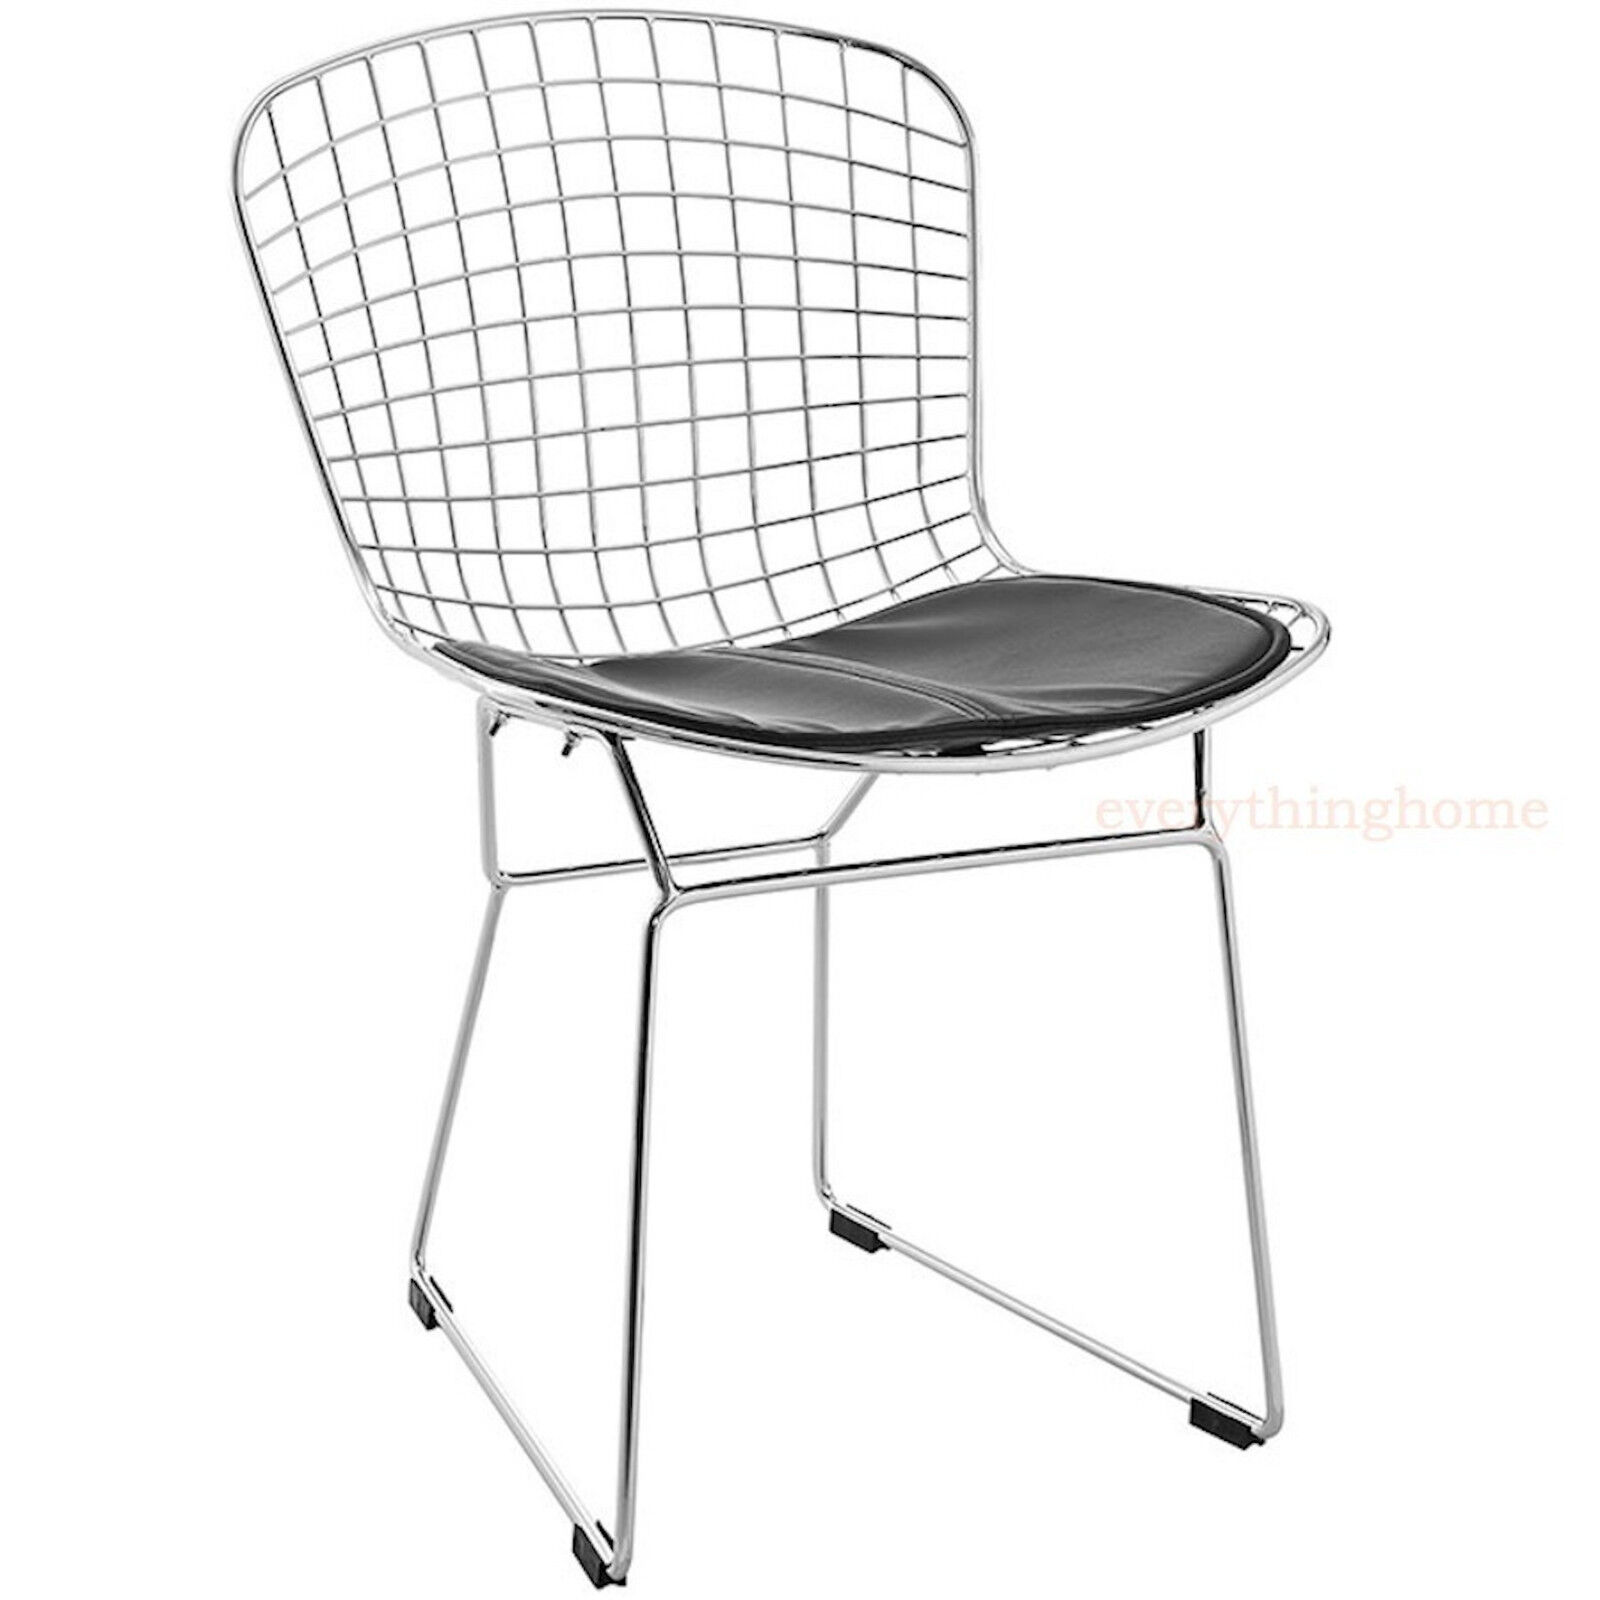 bertoia style chair dining side steel wire chrome mesh black pad 331 lb wt rate